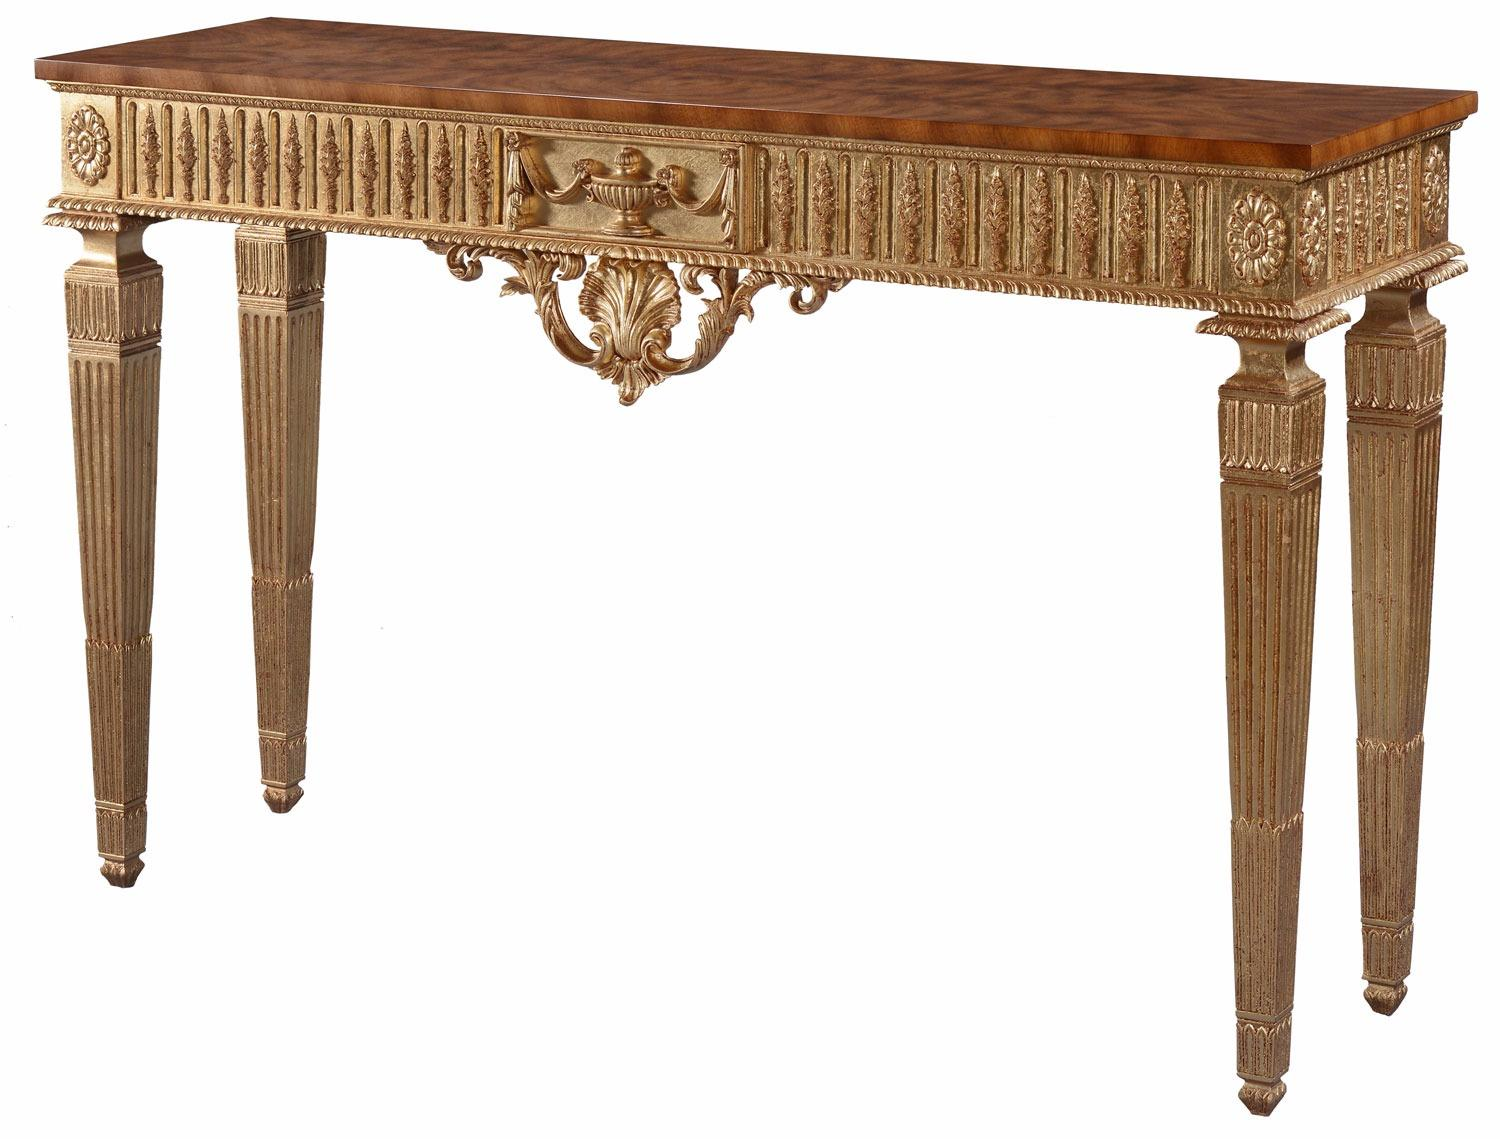 Giltwood console table with cerejeira top